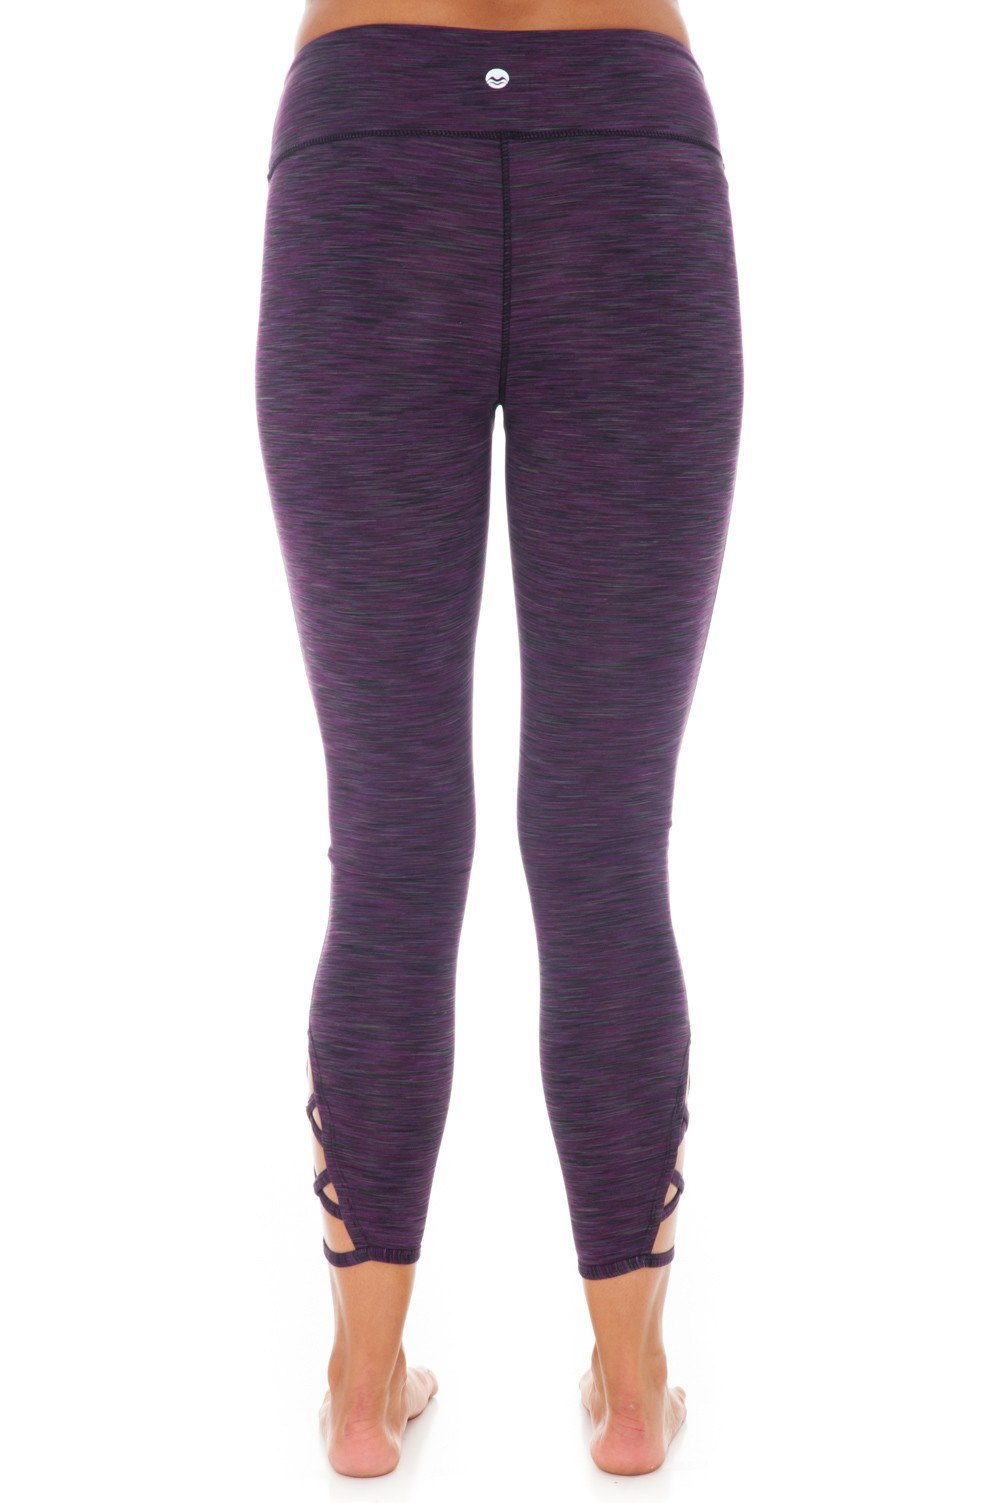 Legging - Criss-Cross Leg - 6